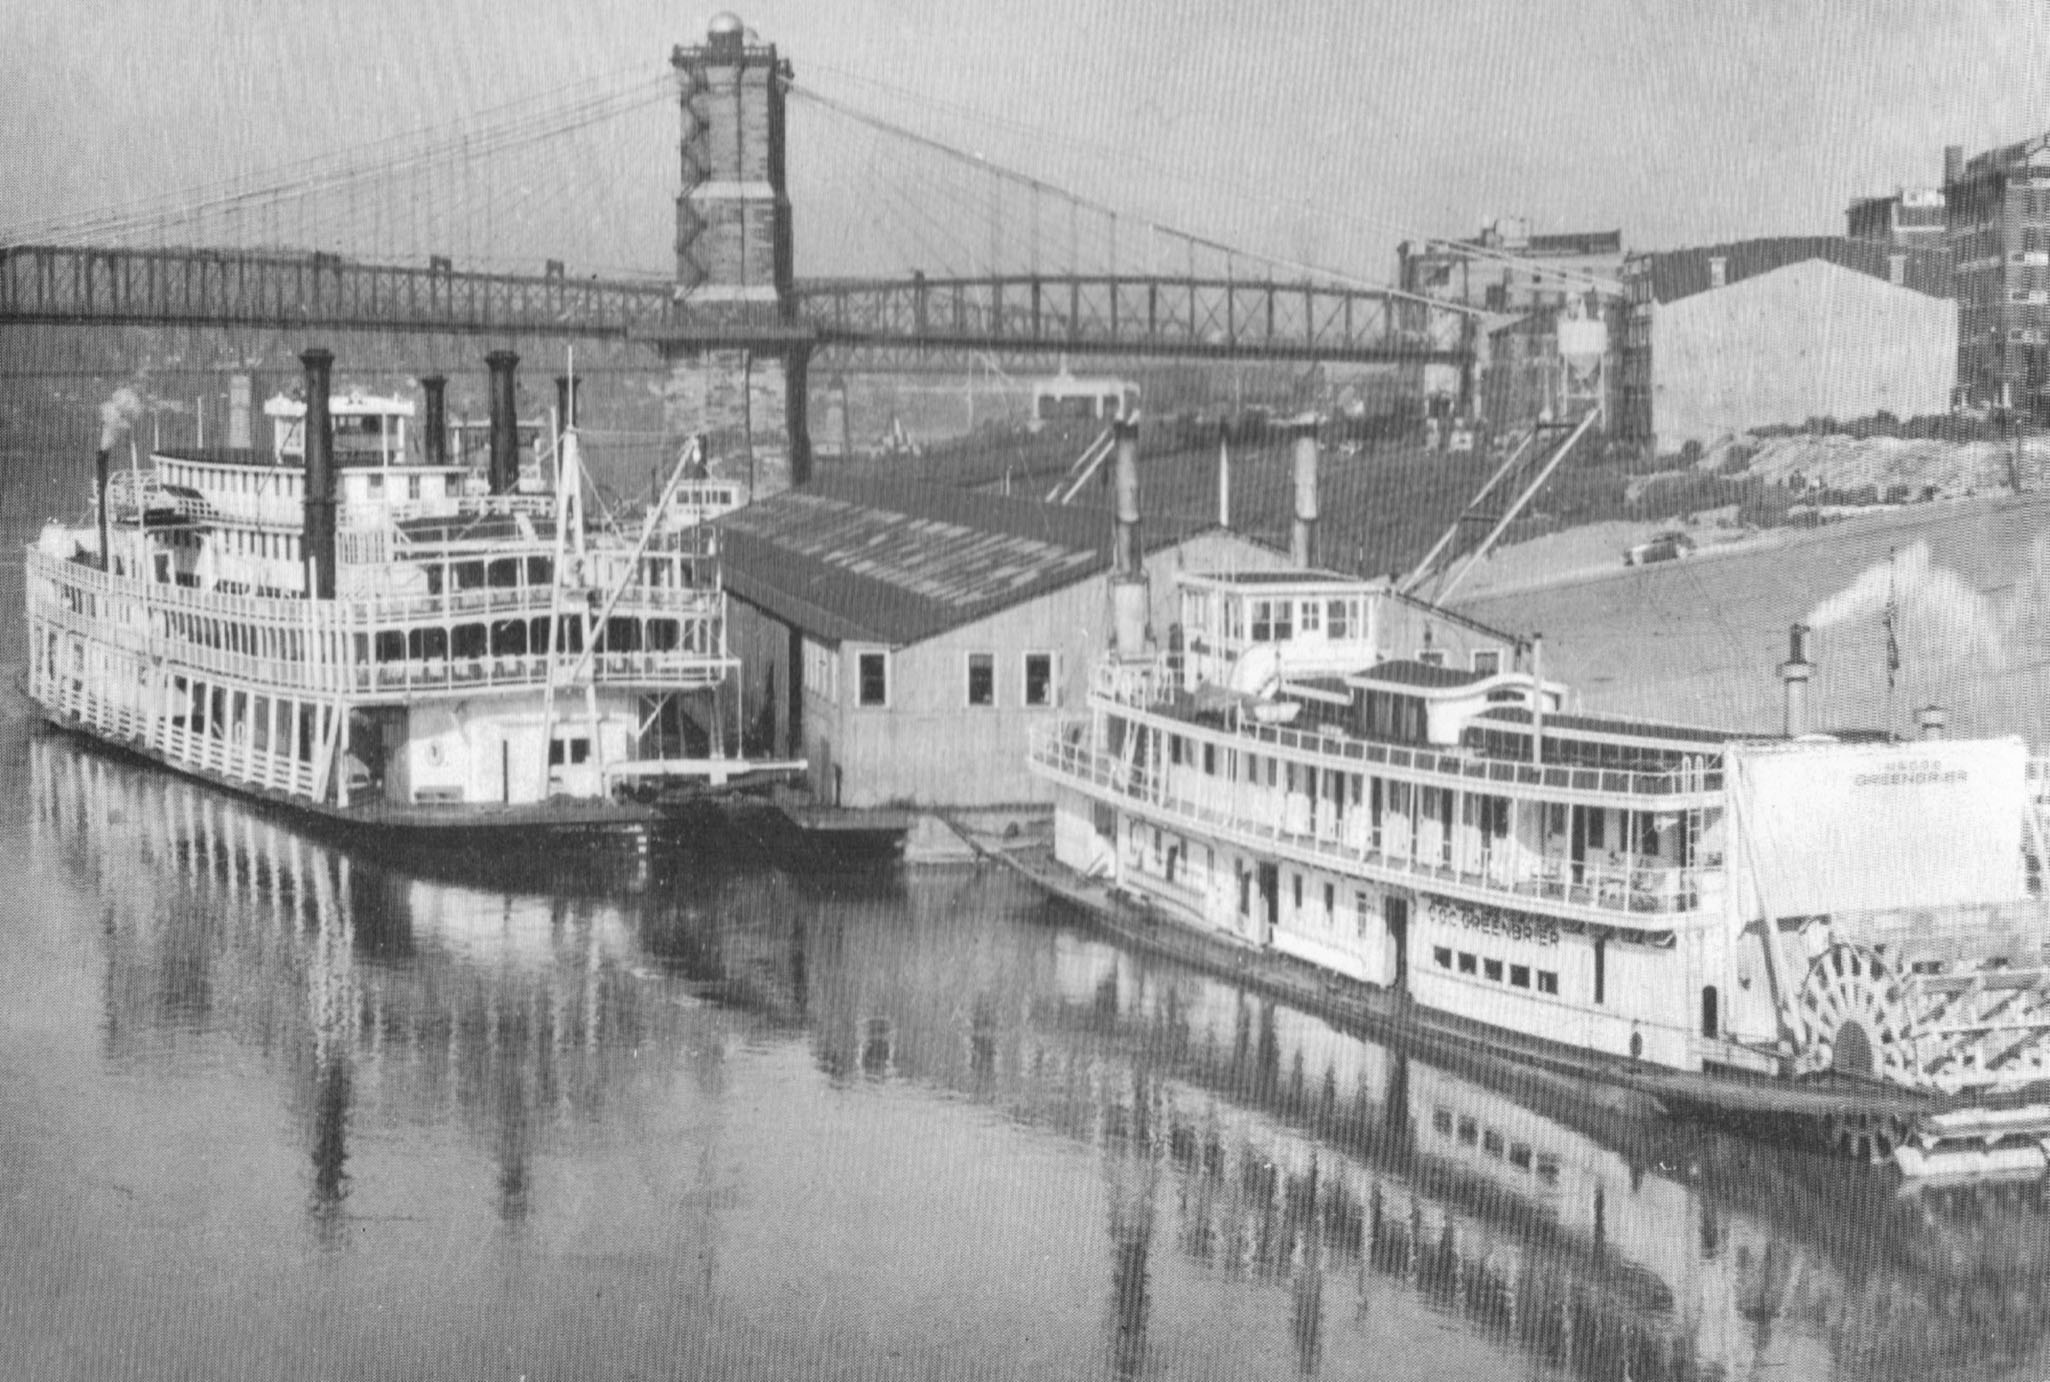 Cincinnati Waterfront in 1941